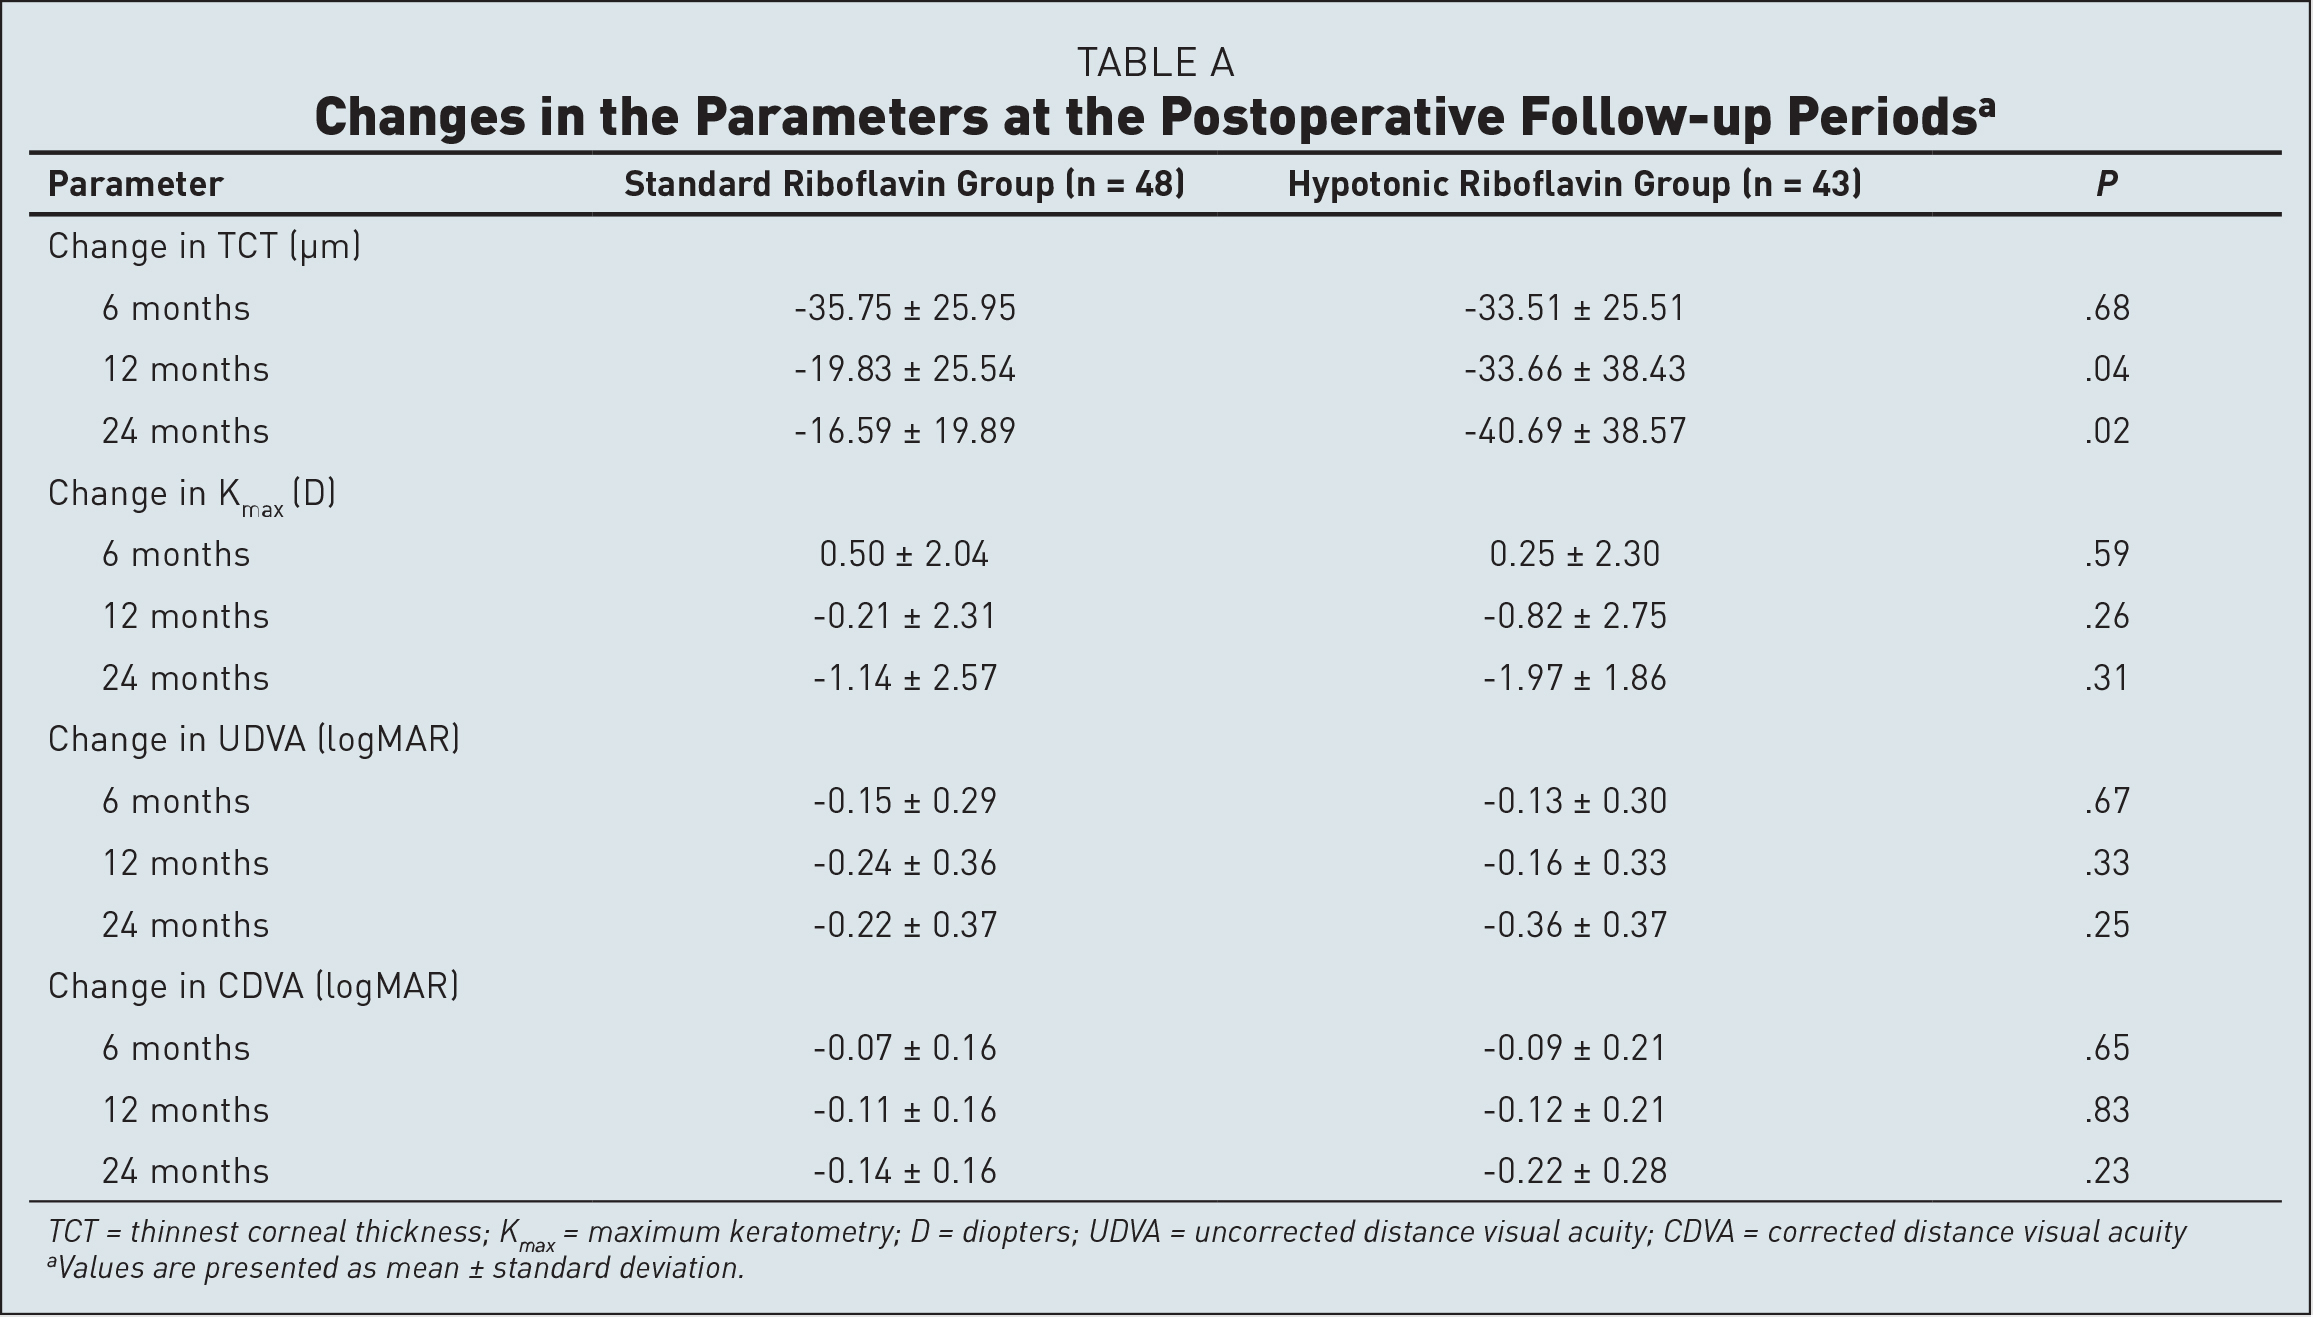 Changes in the Parameters at the Postoperative Follow-up Periodsa